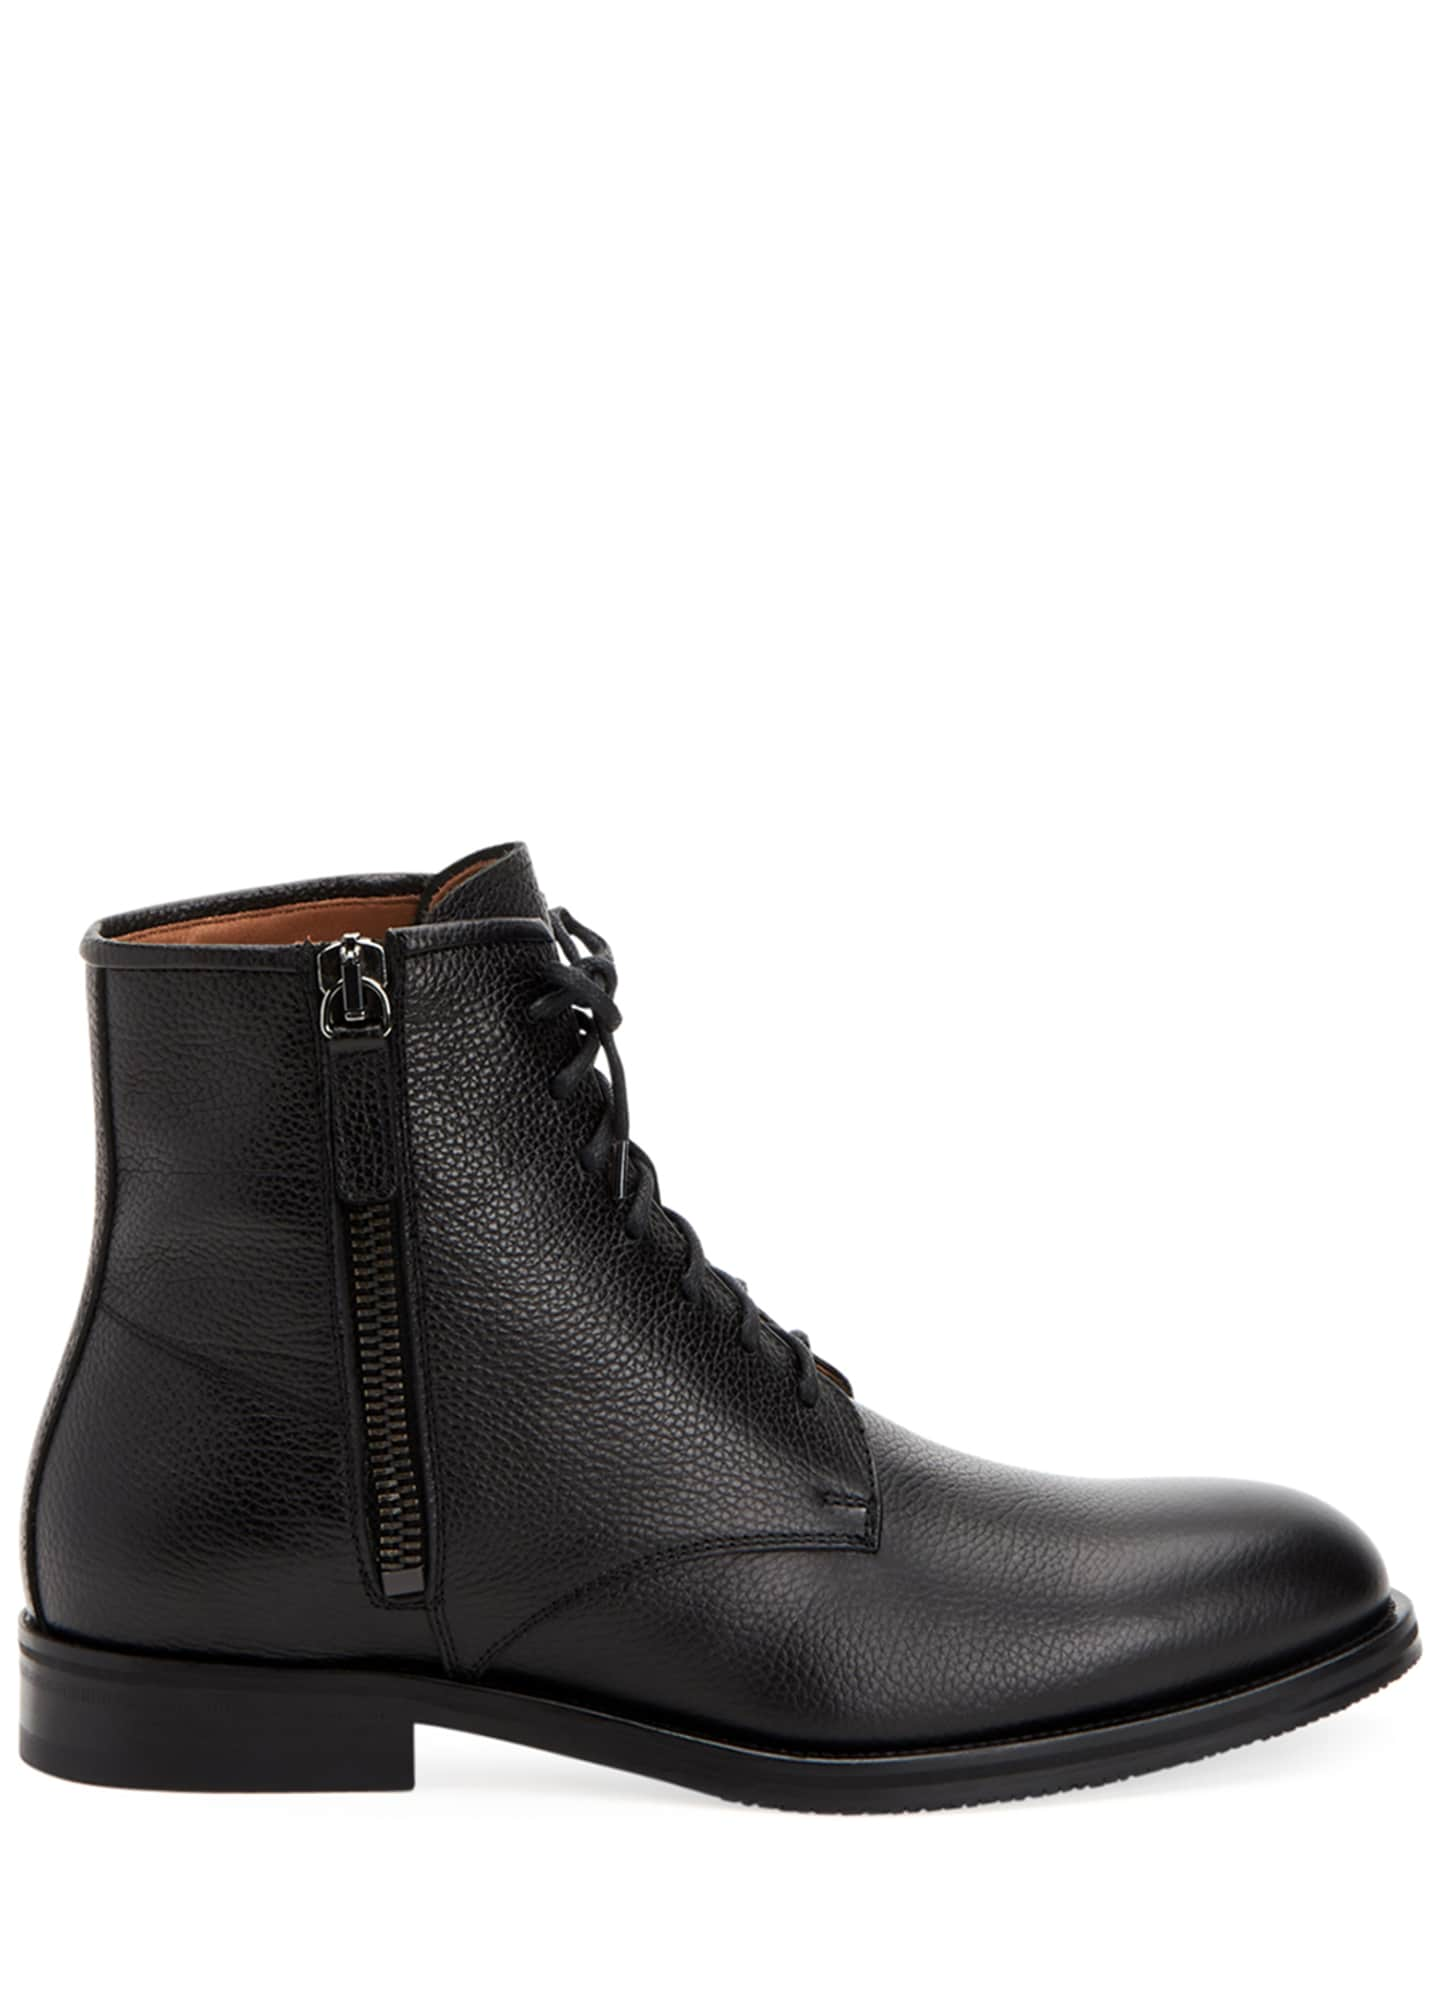 Image 2 of 4: Men's Vladimir Leather Boots